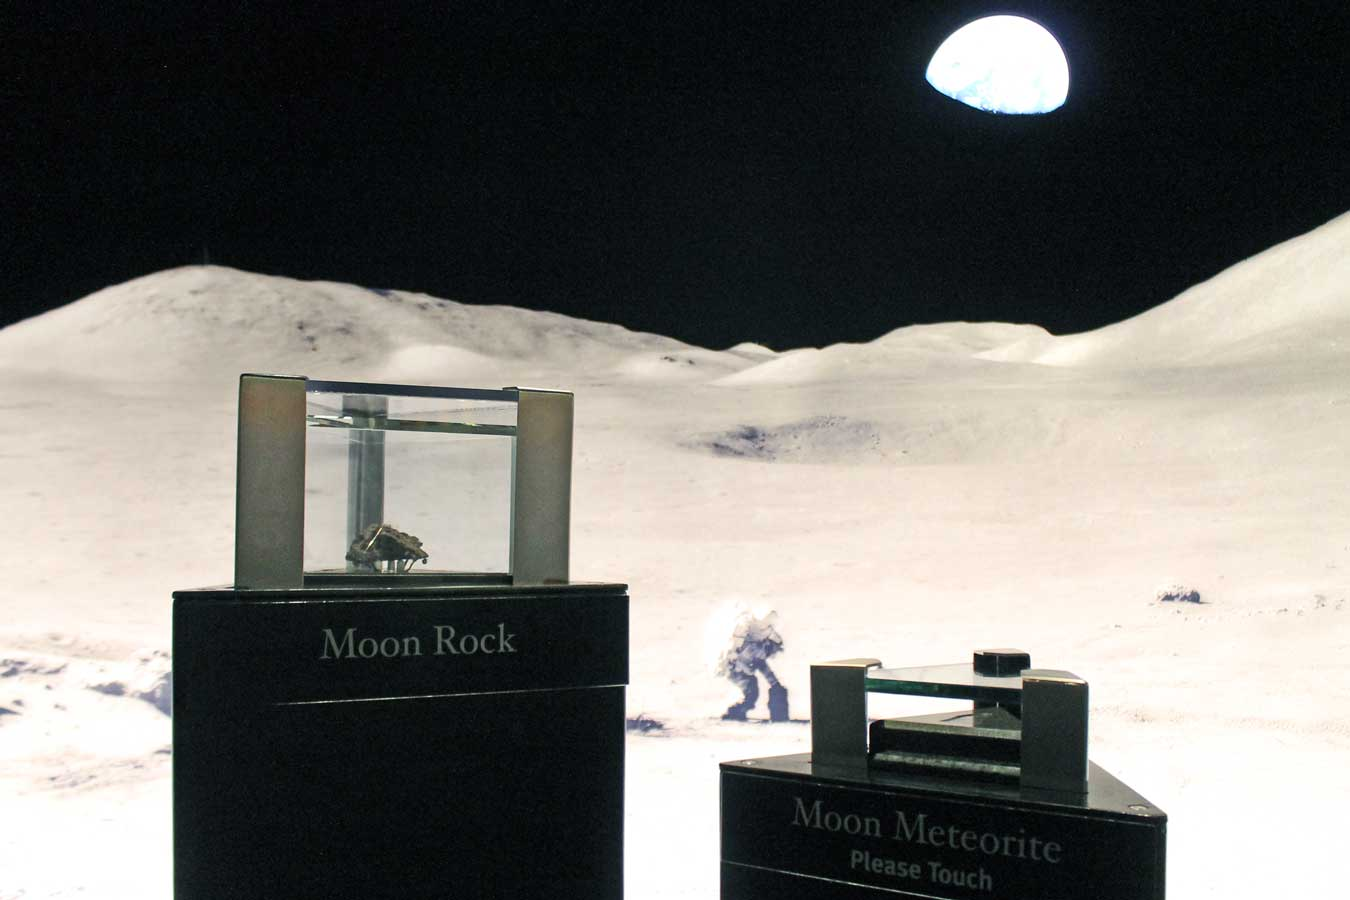 Moon Rock & Meteorite on display at the SPACE: A Journey To Our Future exhibit (Gerald R. Ford Presidential Museum in Grand Rapids, Michigan) /// Gerald R. Ford Presidential Museum: Legacy Of An Unelected President - (via Wading in Big Shoes)